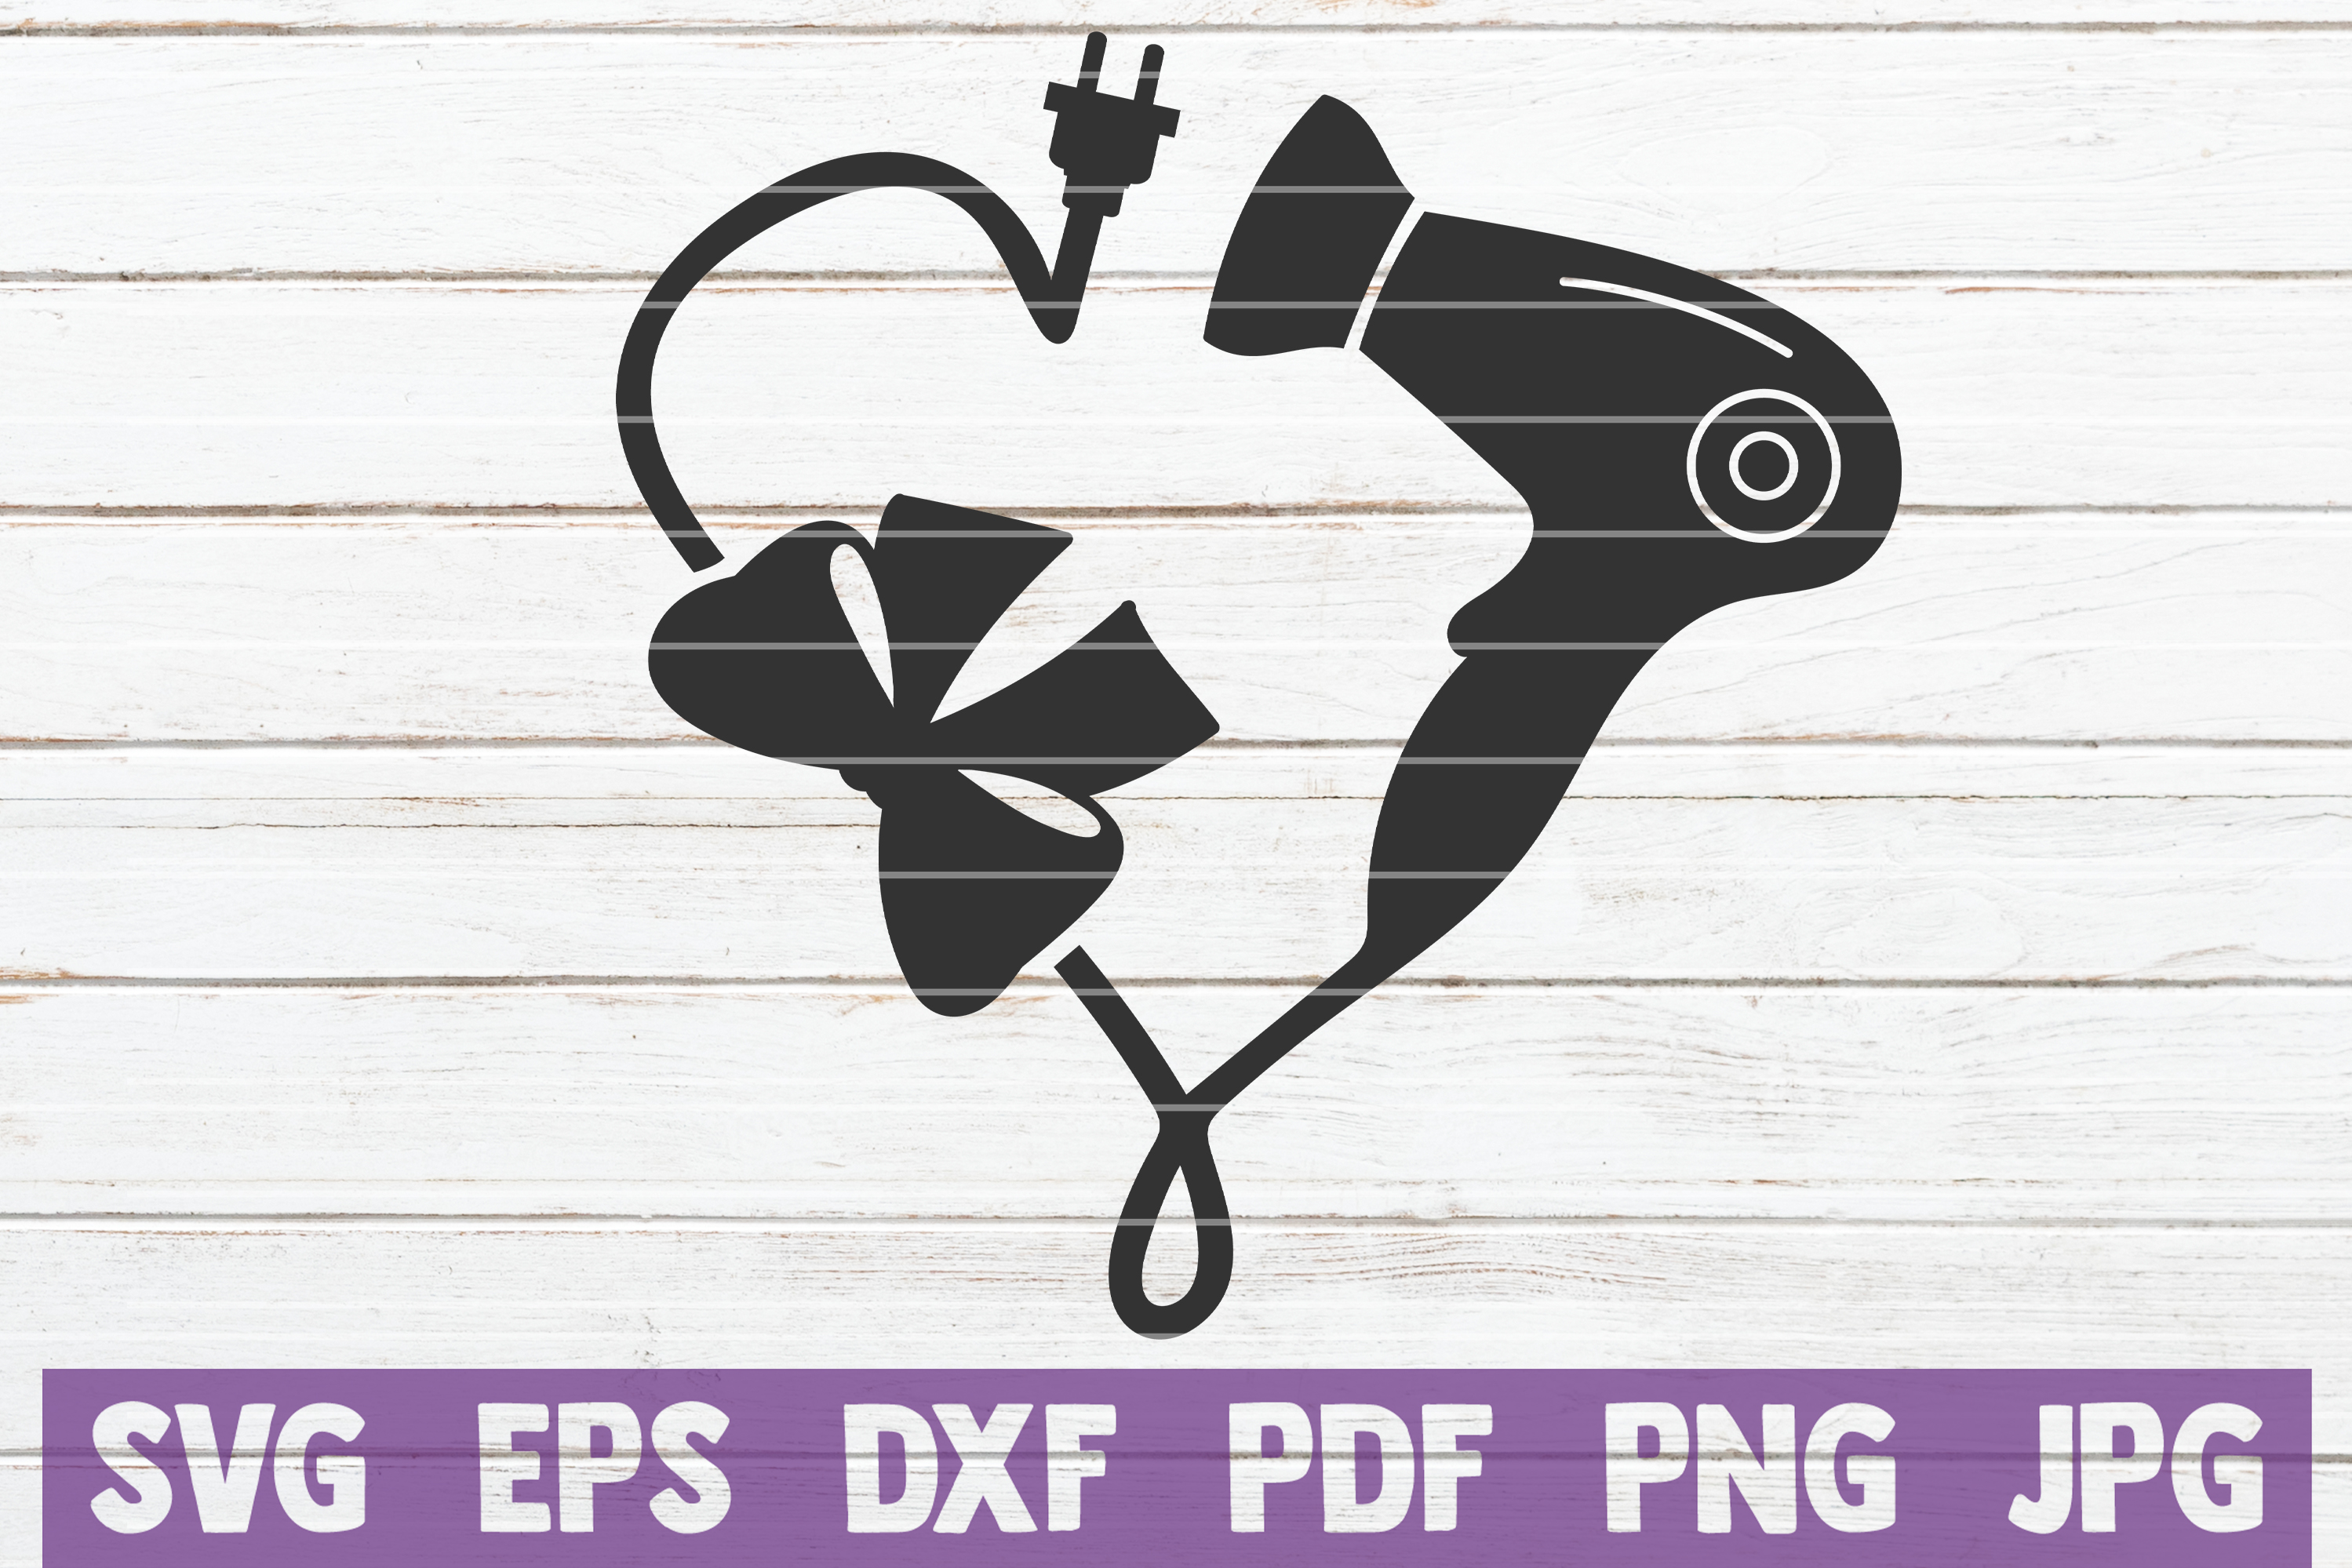 Download Free Hairdresser Heart Graphic By Mintymarshmallows Creative Fabrica for Cricut Explore, Silhouette and other cutting machines.